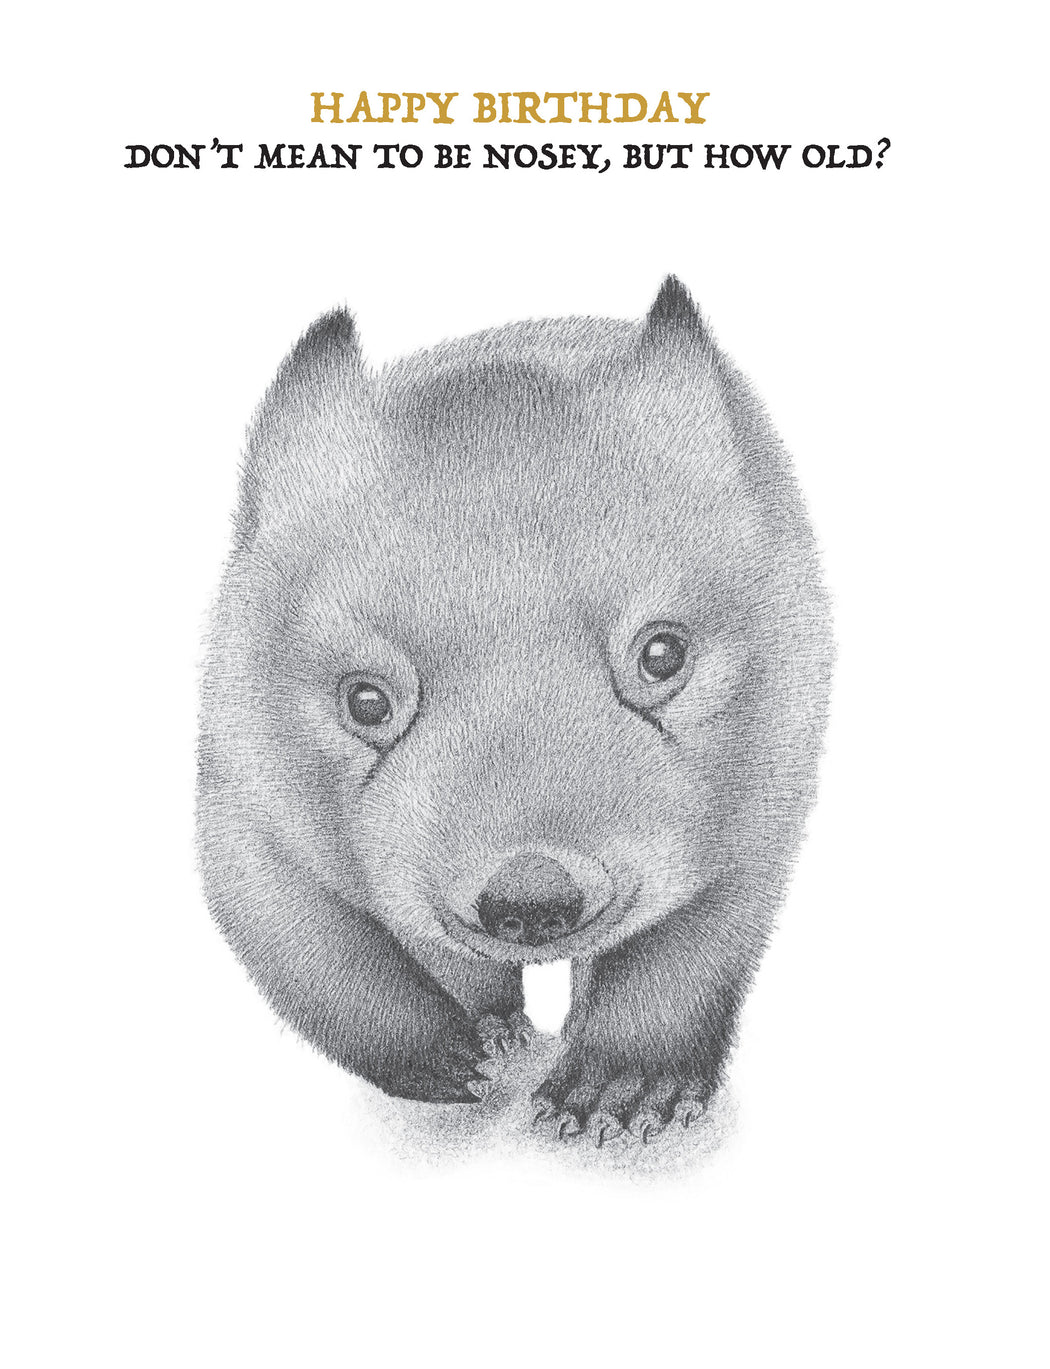 Squirrel Design Studio-Wombat Don't Mean To Be Nosey - Birthday Card-Mott and Mulberry